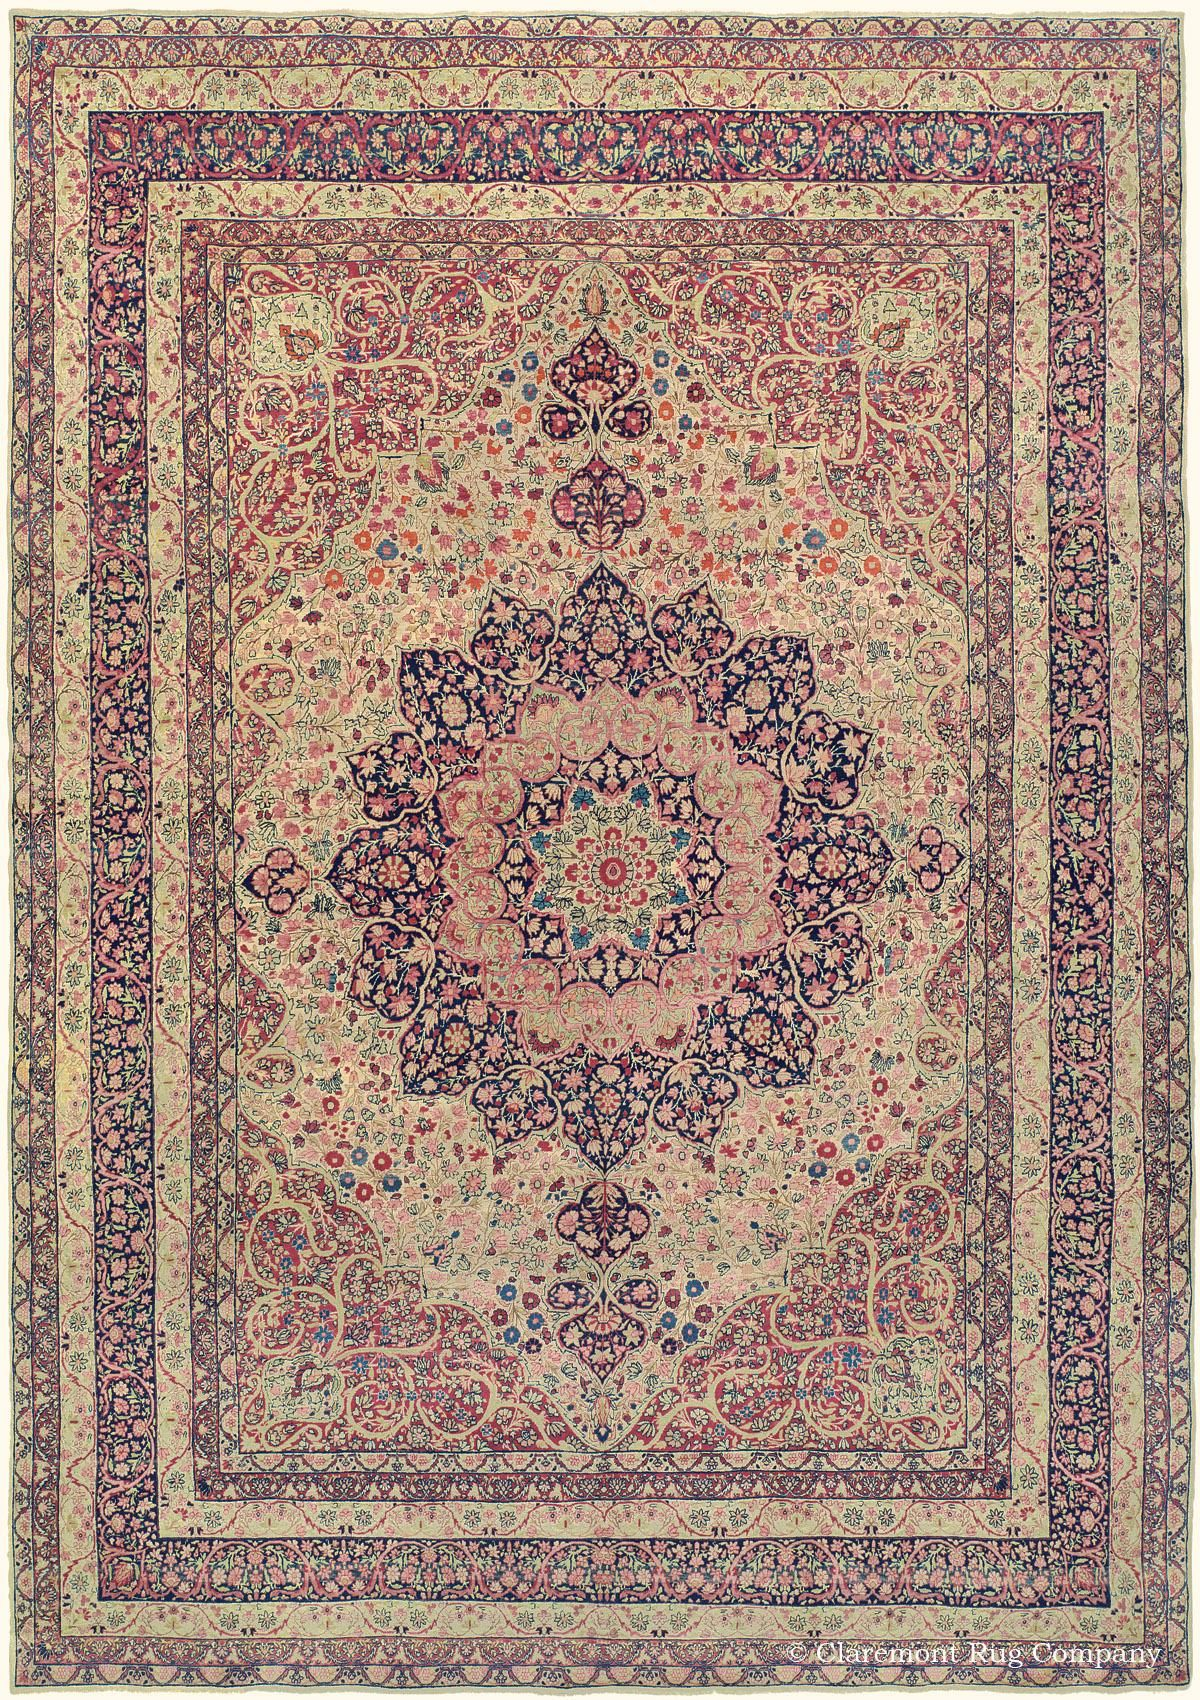 Laver Kirman Southeast Persian 10ft 9in X 15ft 9in Circa 1920 Antique Persian Carpet Claremont Rug Company Flying Carpet